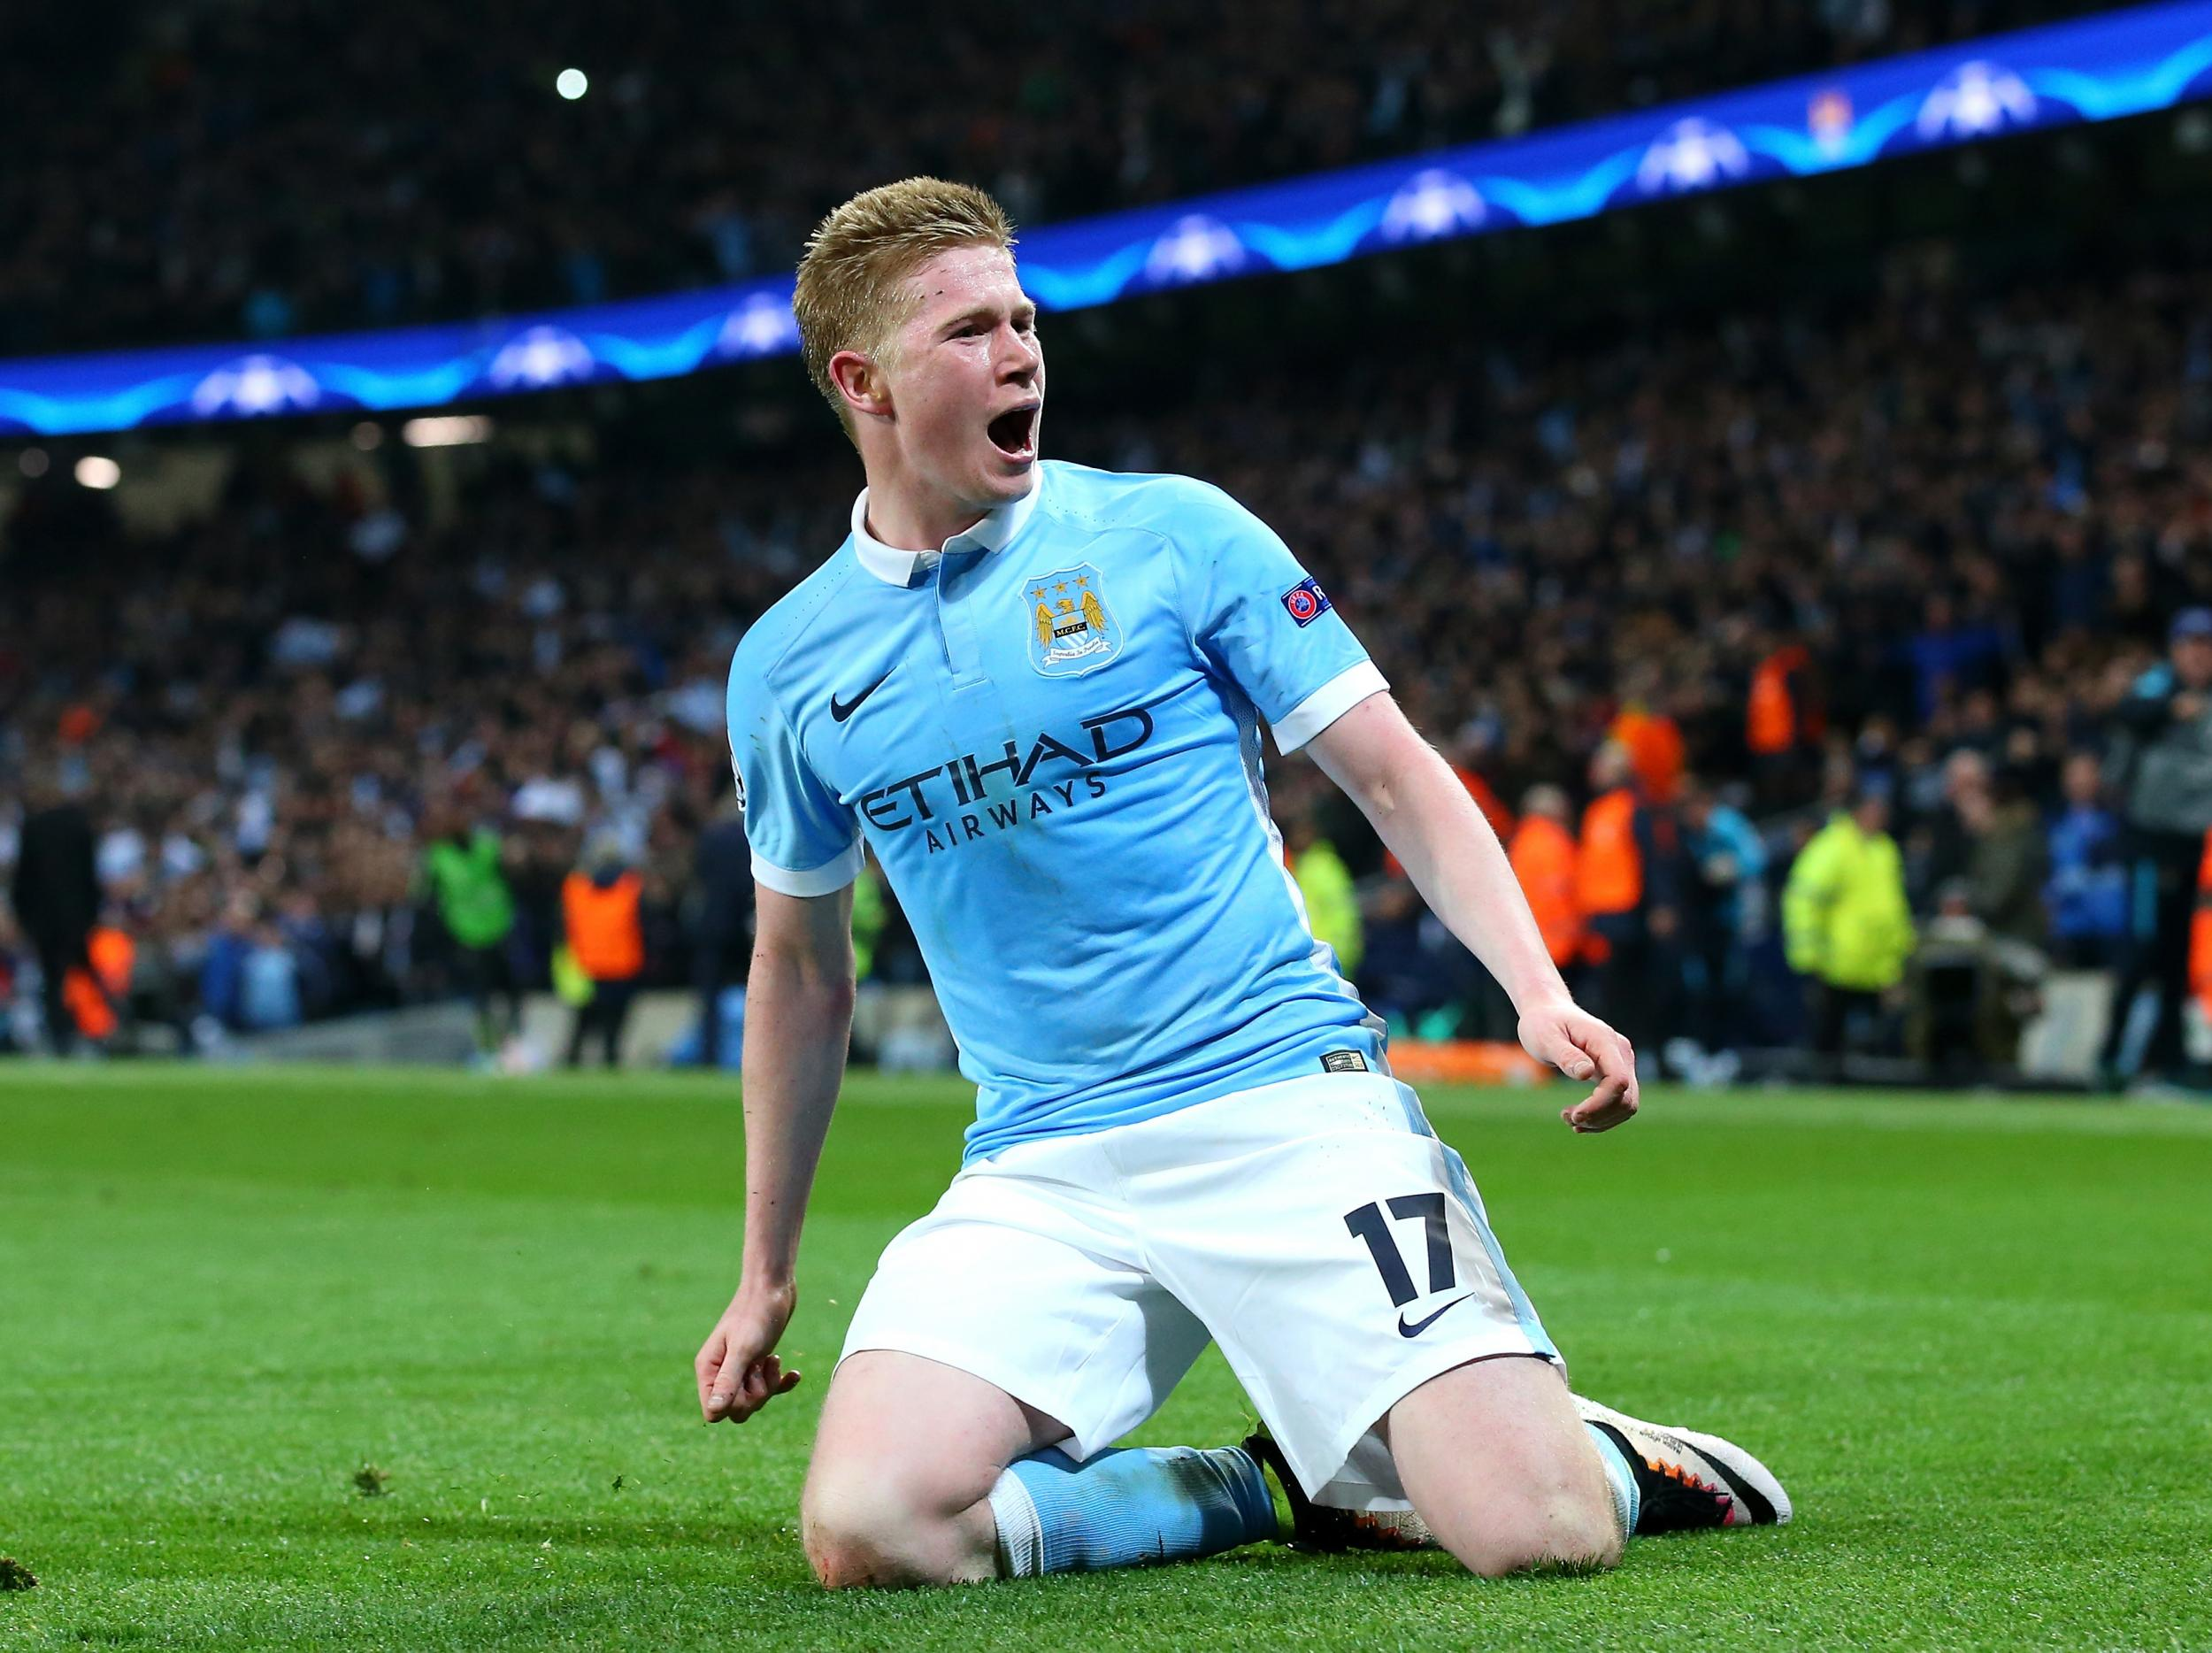 Kevin De Bruyne: A defining year for a player on the edge of greatness